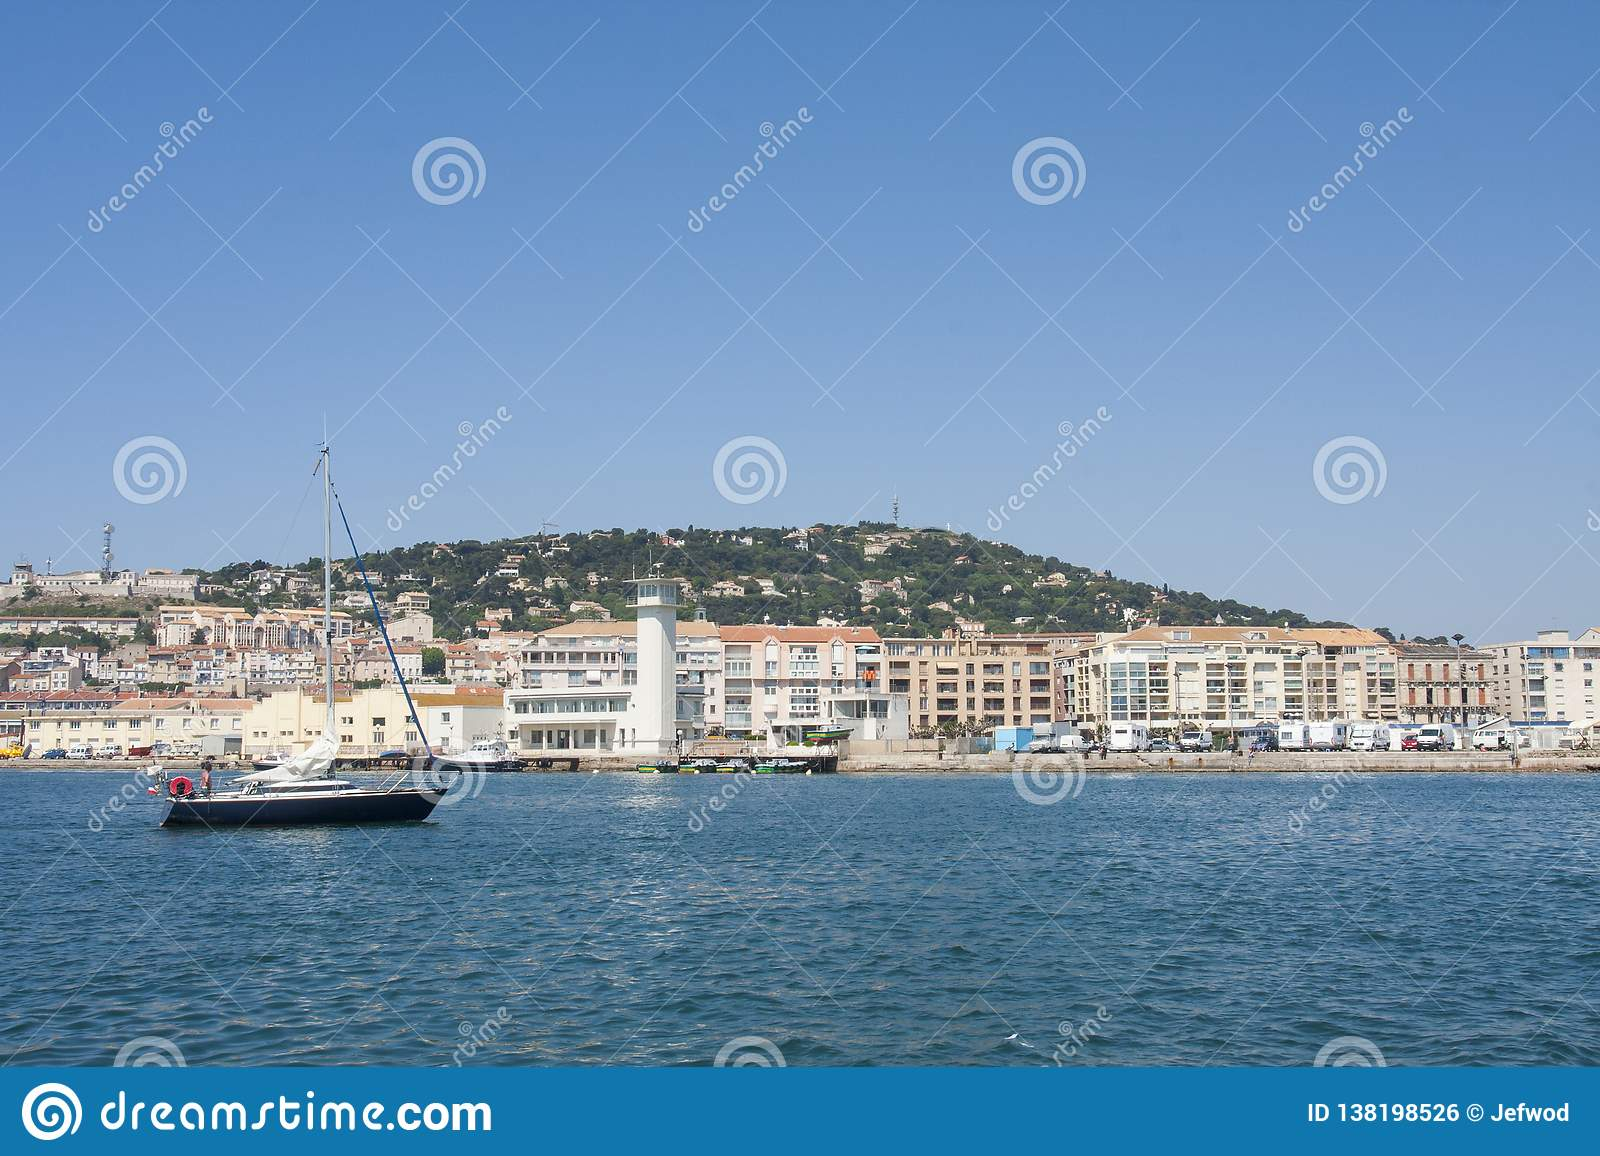 Sailing ship in Sete Harbor in the south of France